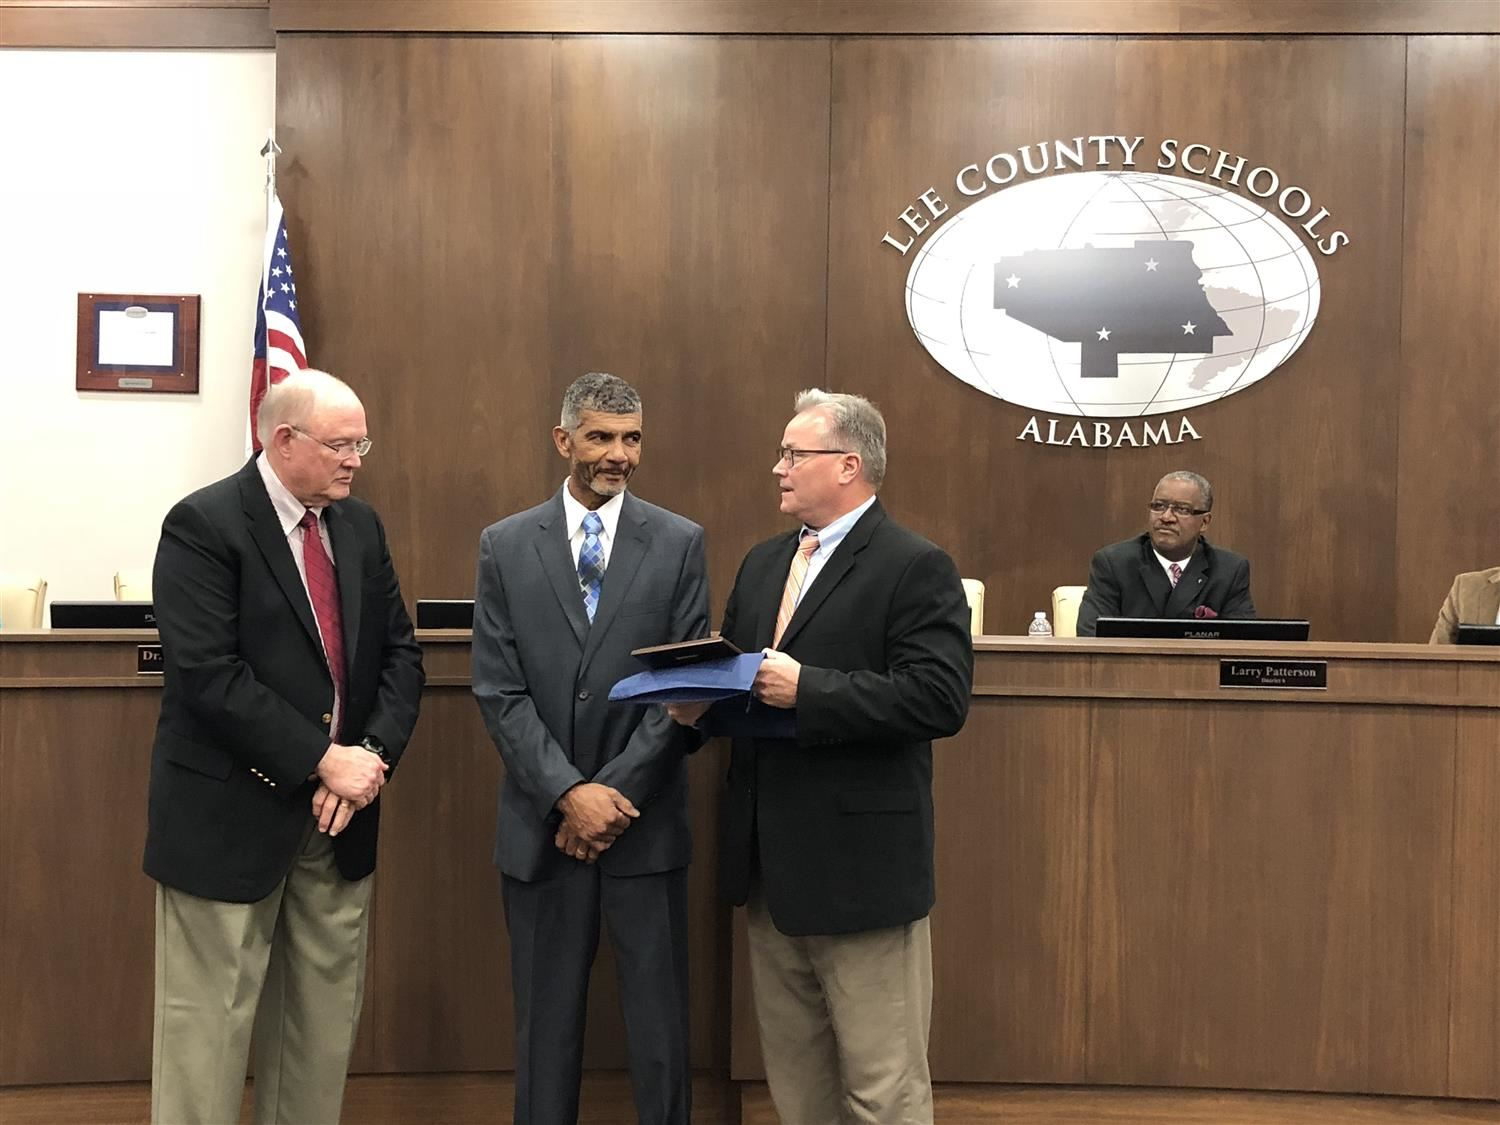 President of the Board, Mr. Larry Boswell, and Superintendent, Dr. Mac McCoy, present an award of recognition to Mr. Stringer